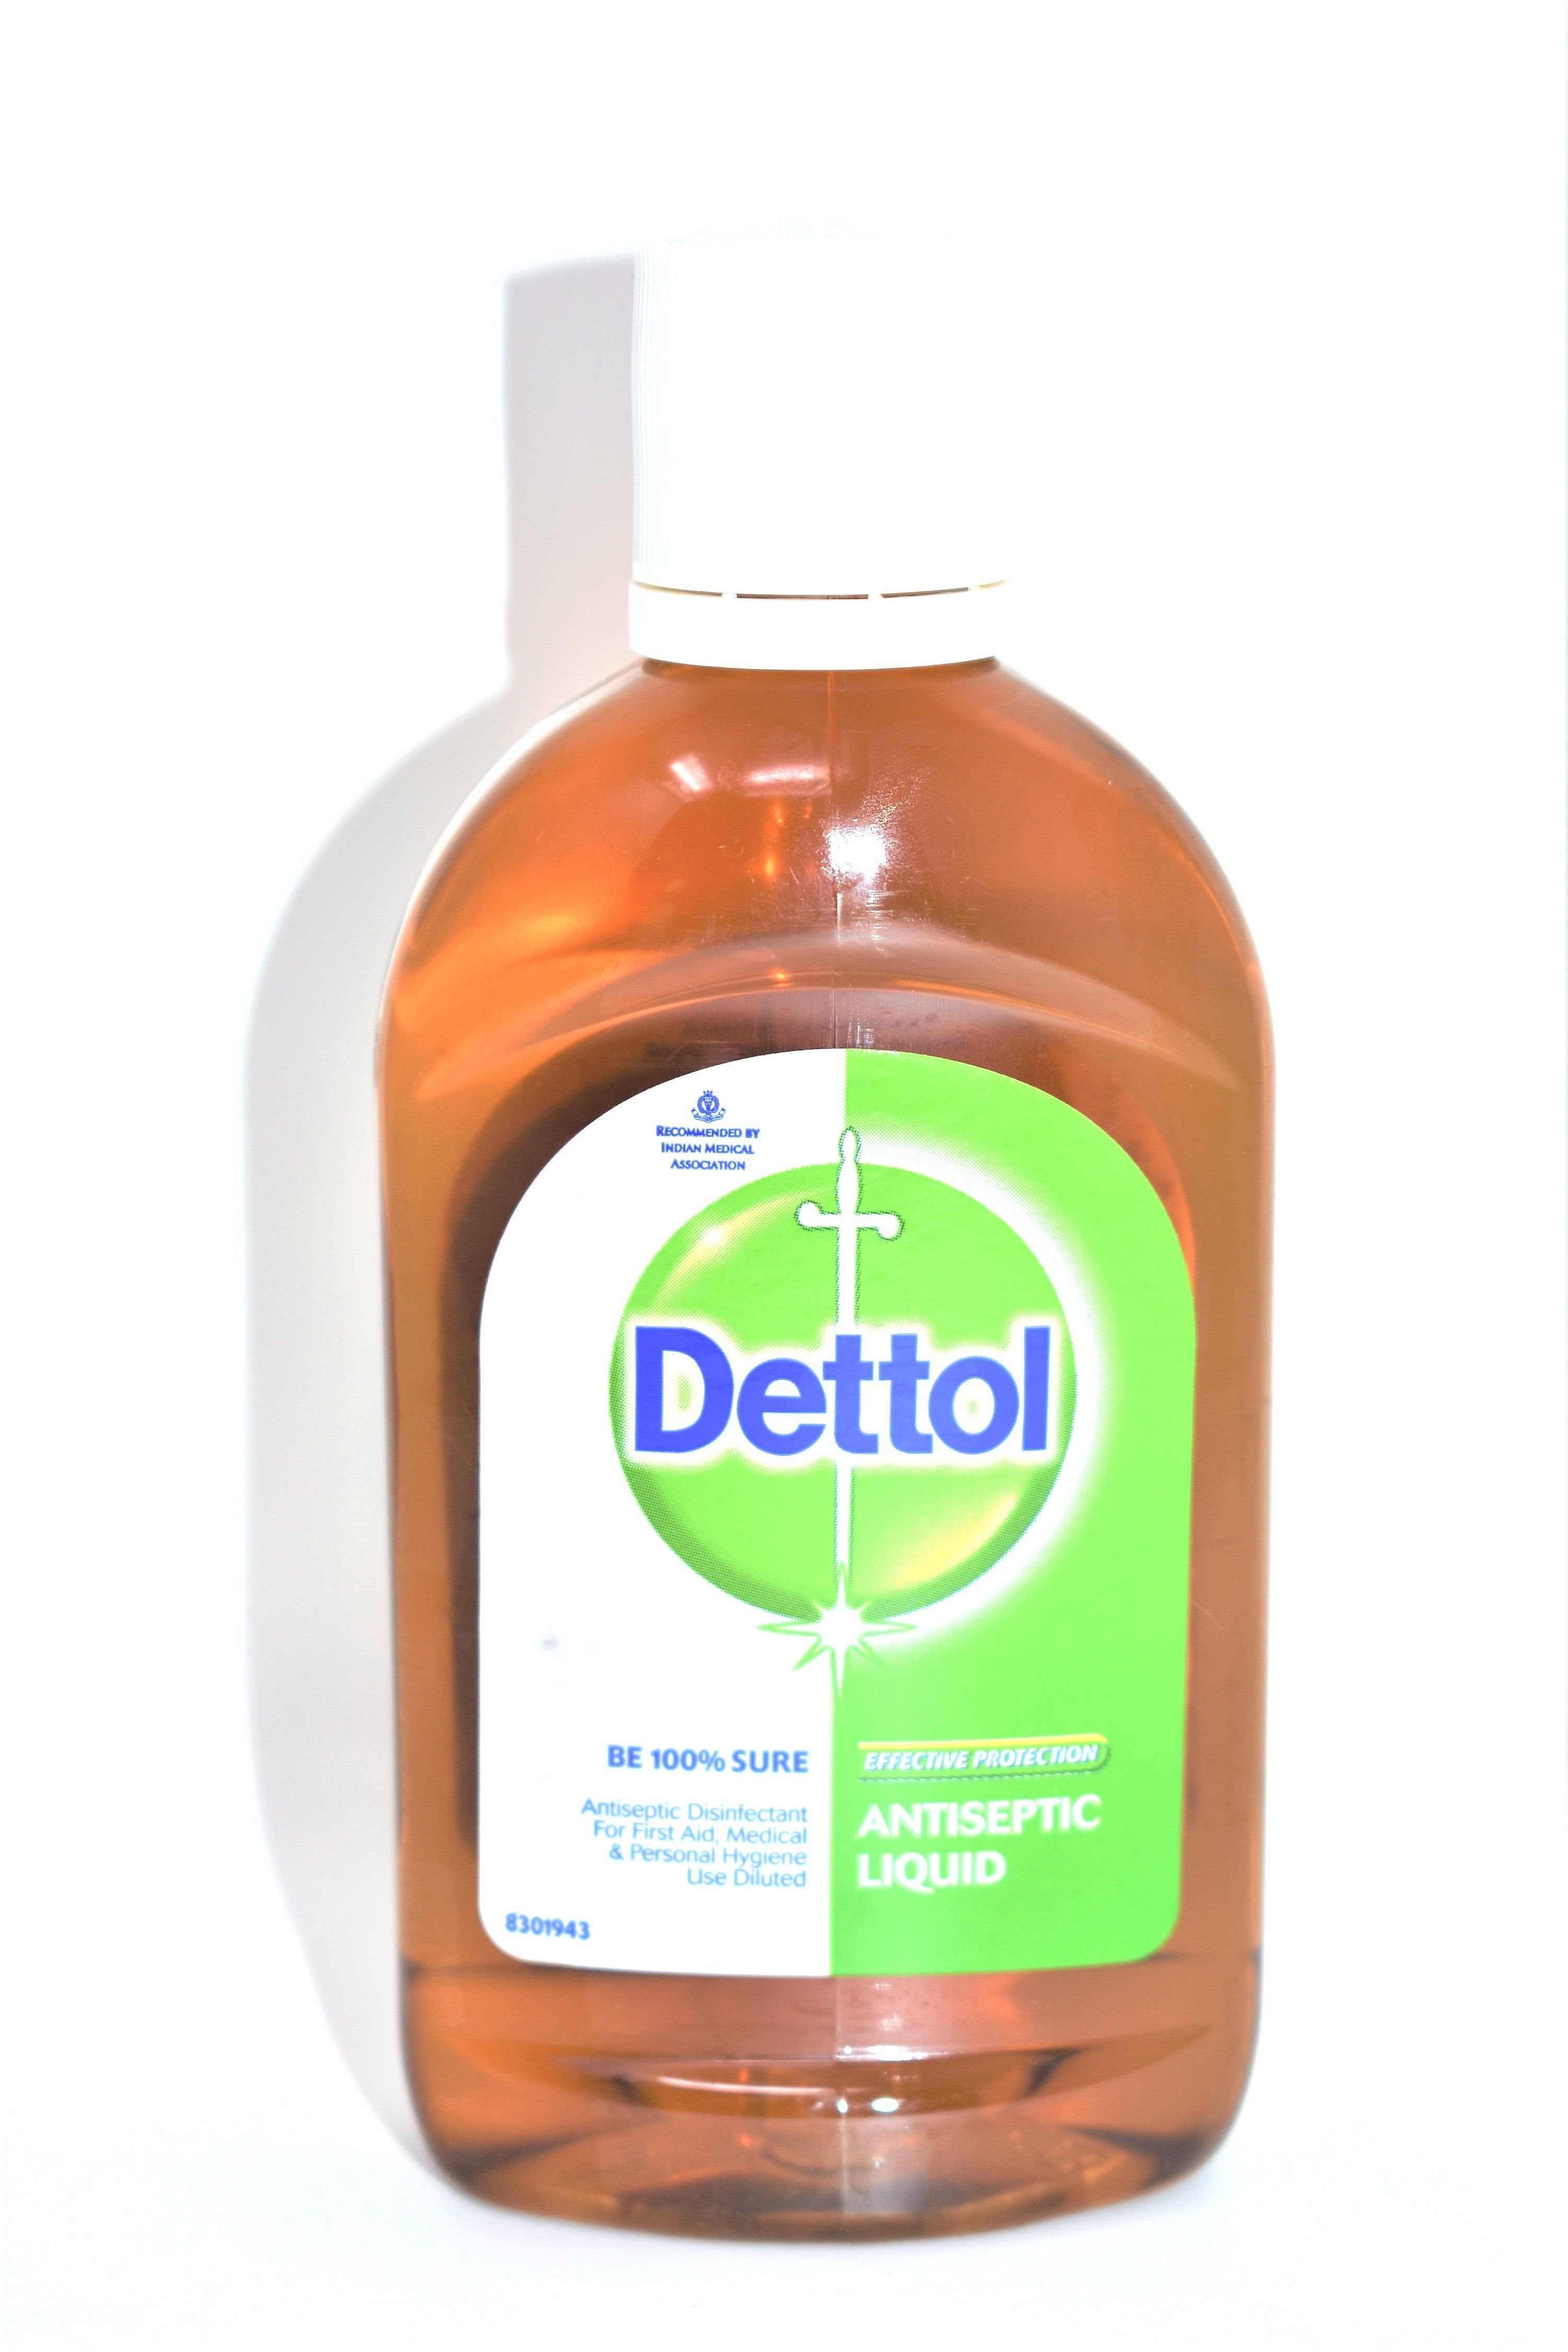 Dettol Antiseptic Liquid 110ml Personal Hygiene Body Wash